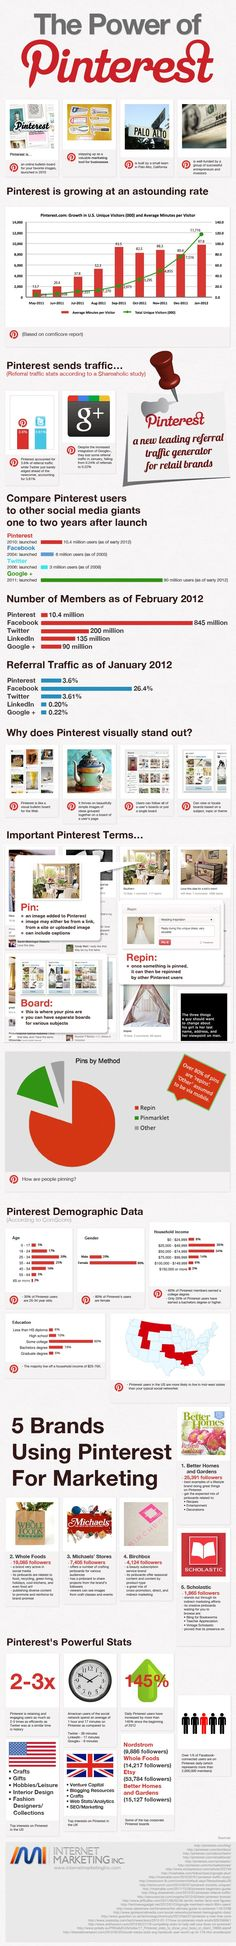 The Power of Pinterest via @InternetMktgInc